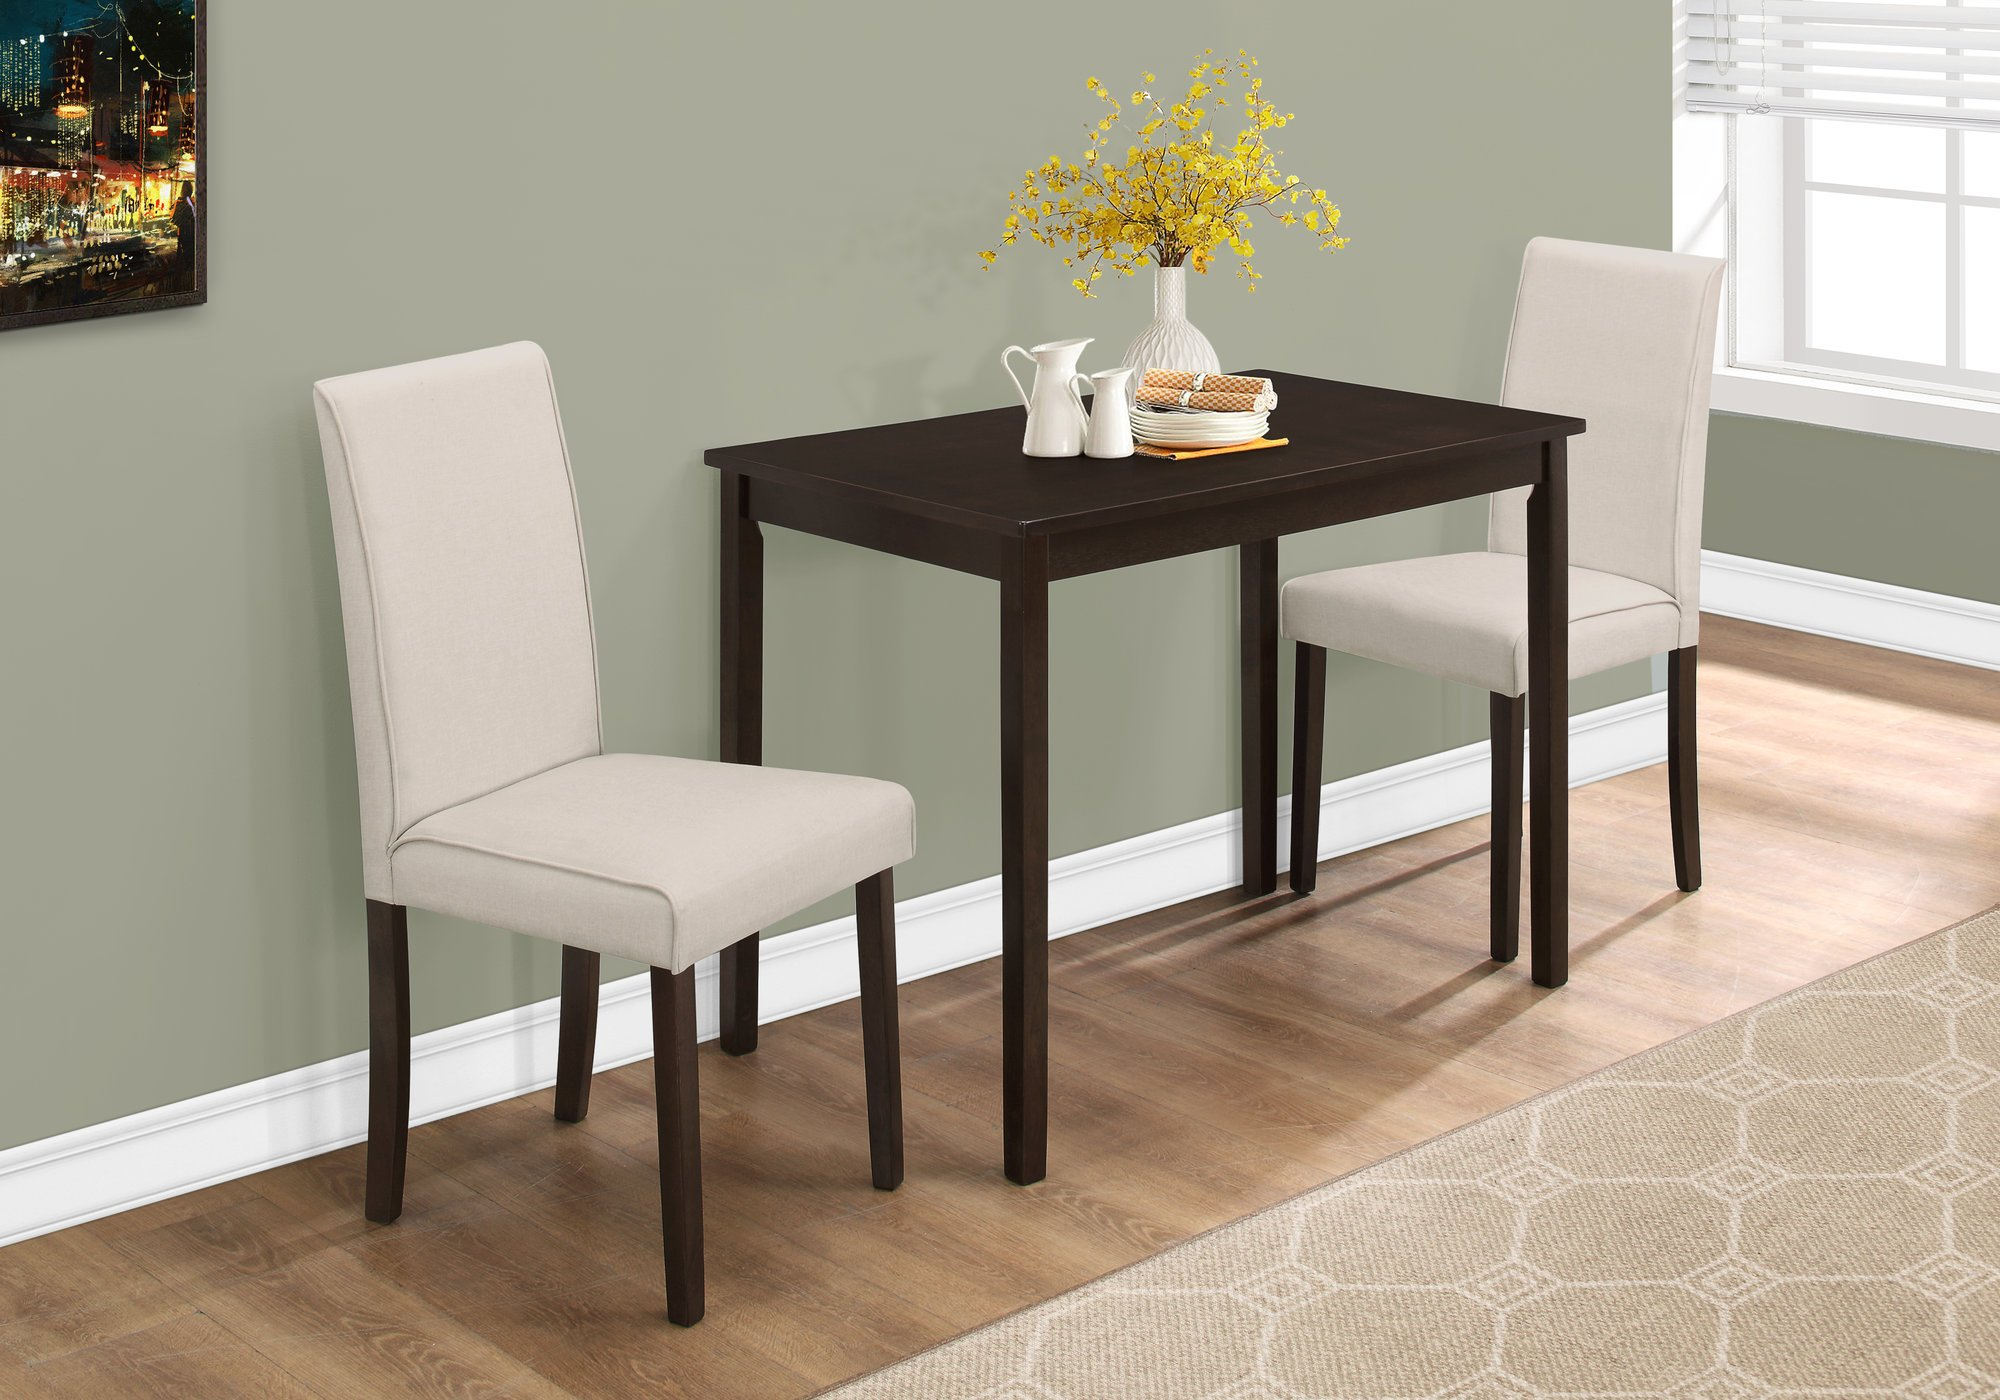 Monarch Specialties I 1017, Dining Set Set, Parson Chairs, Cappuccino/Beige, 3pcs